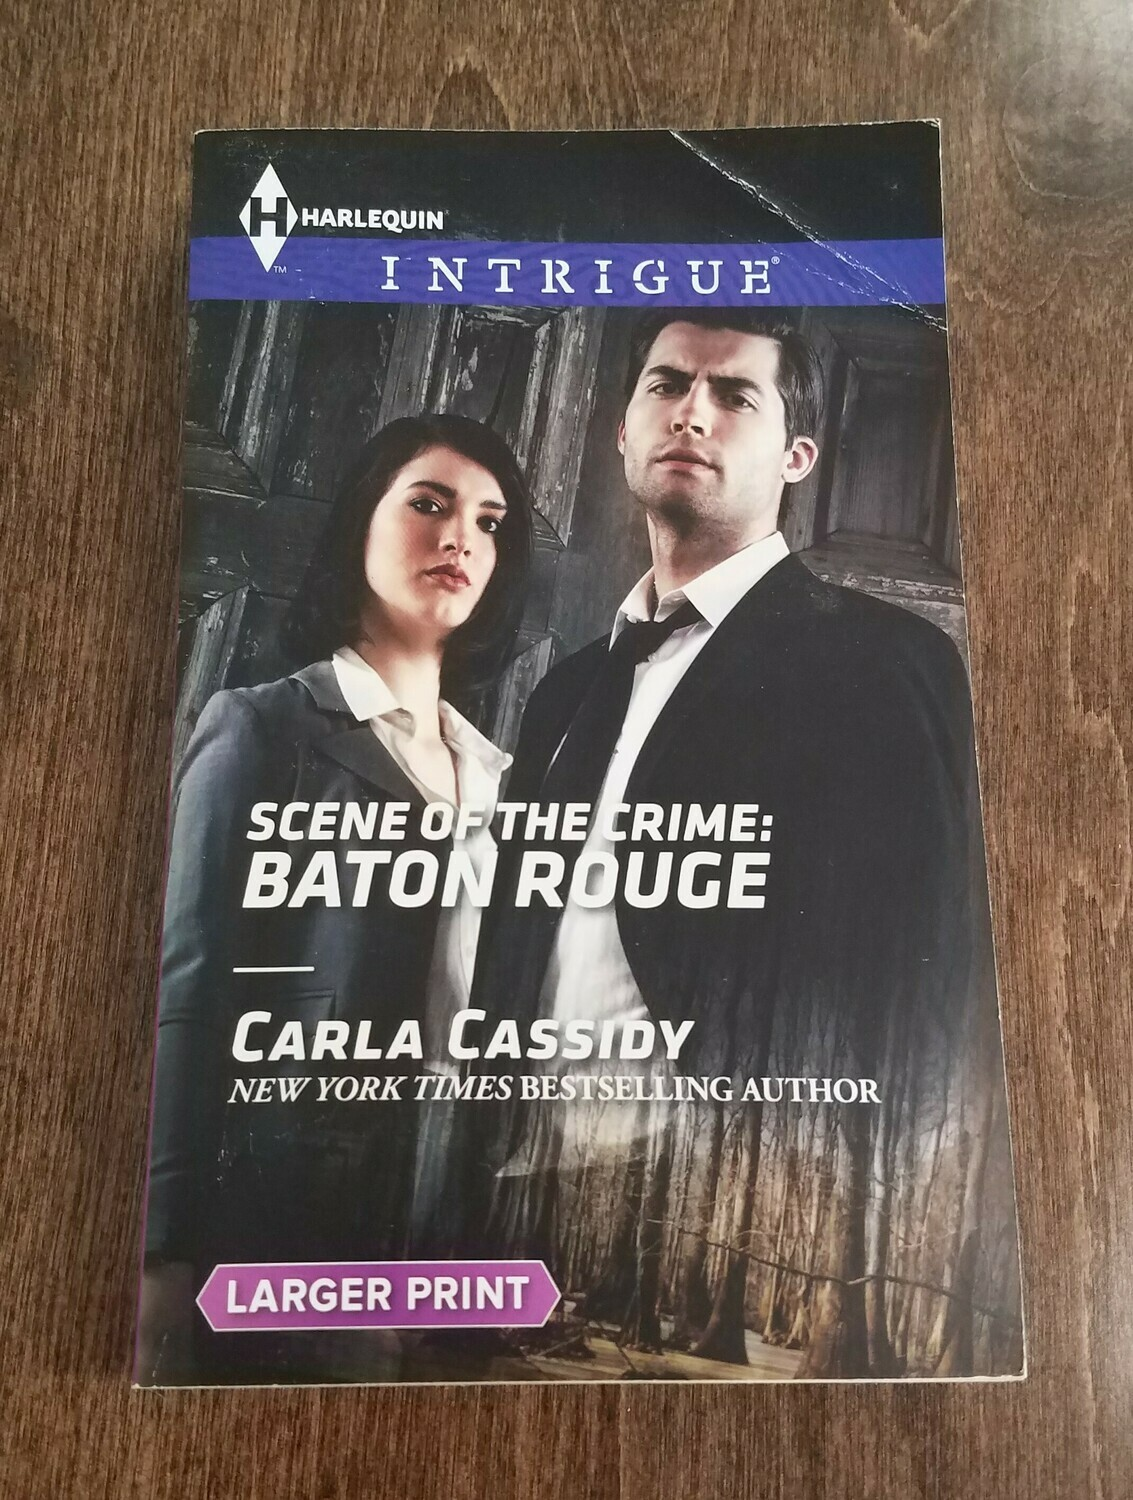 Scene of the Crime: Baton Rouge by Carla Cassidy